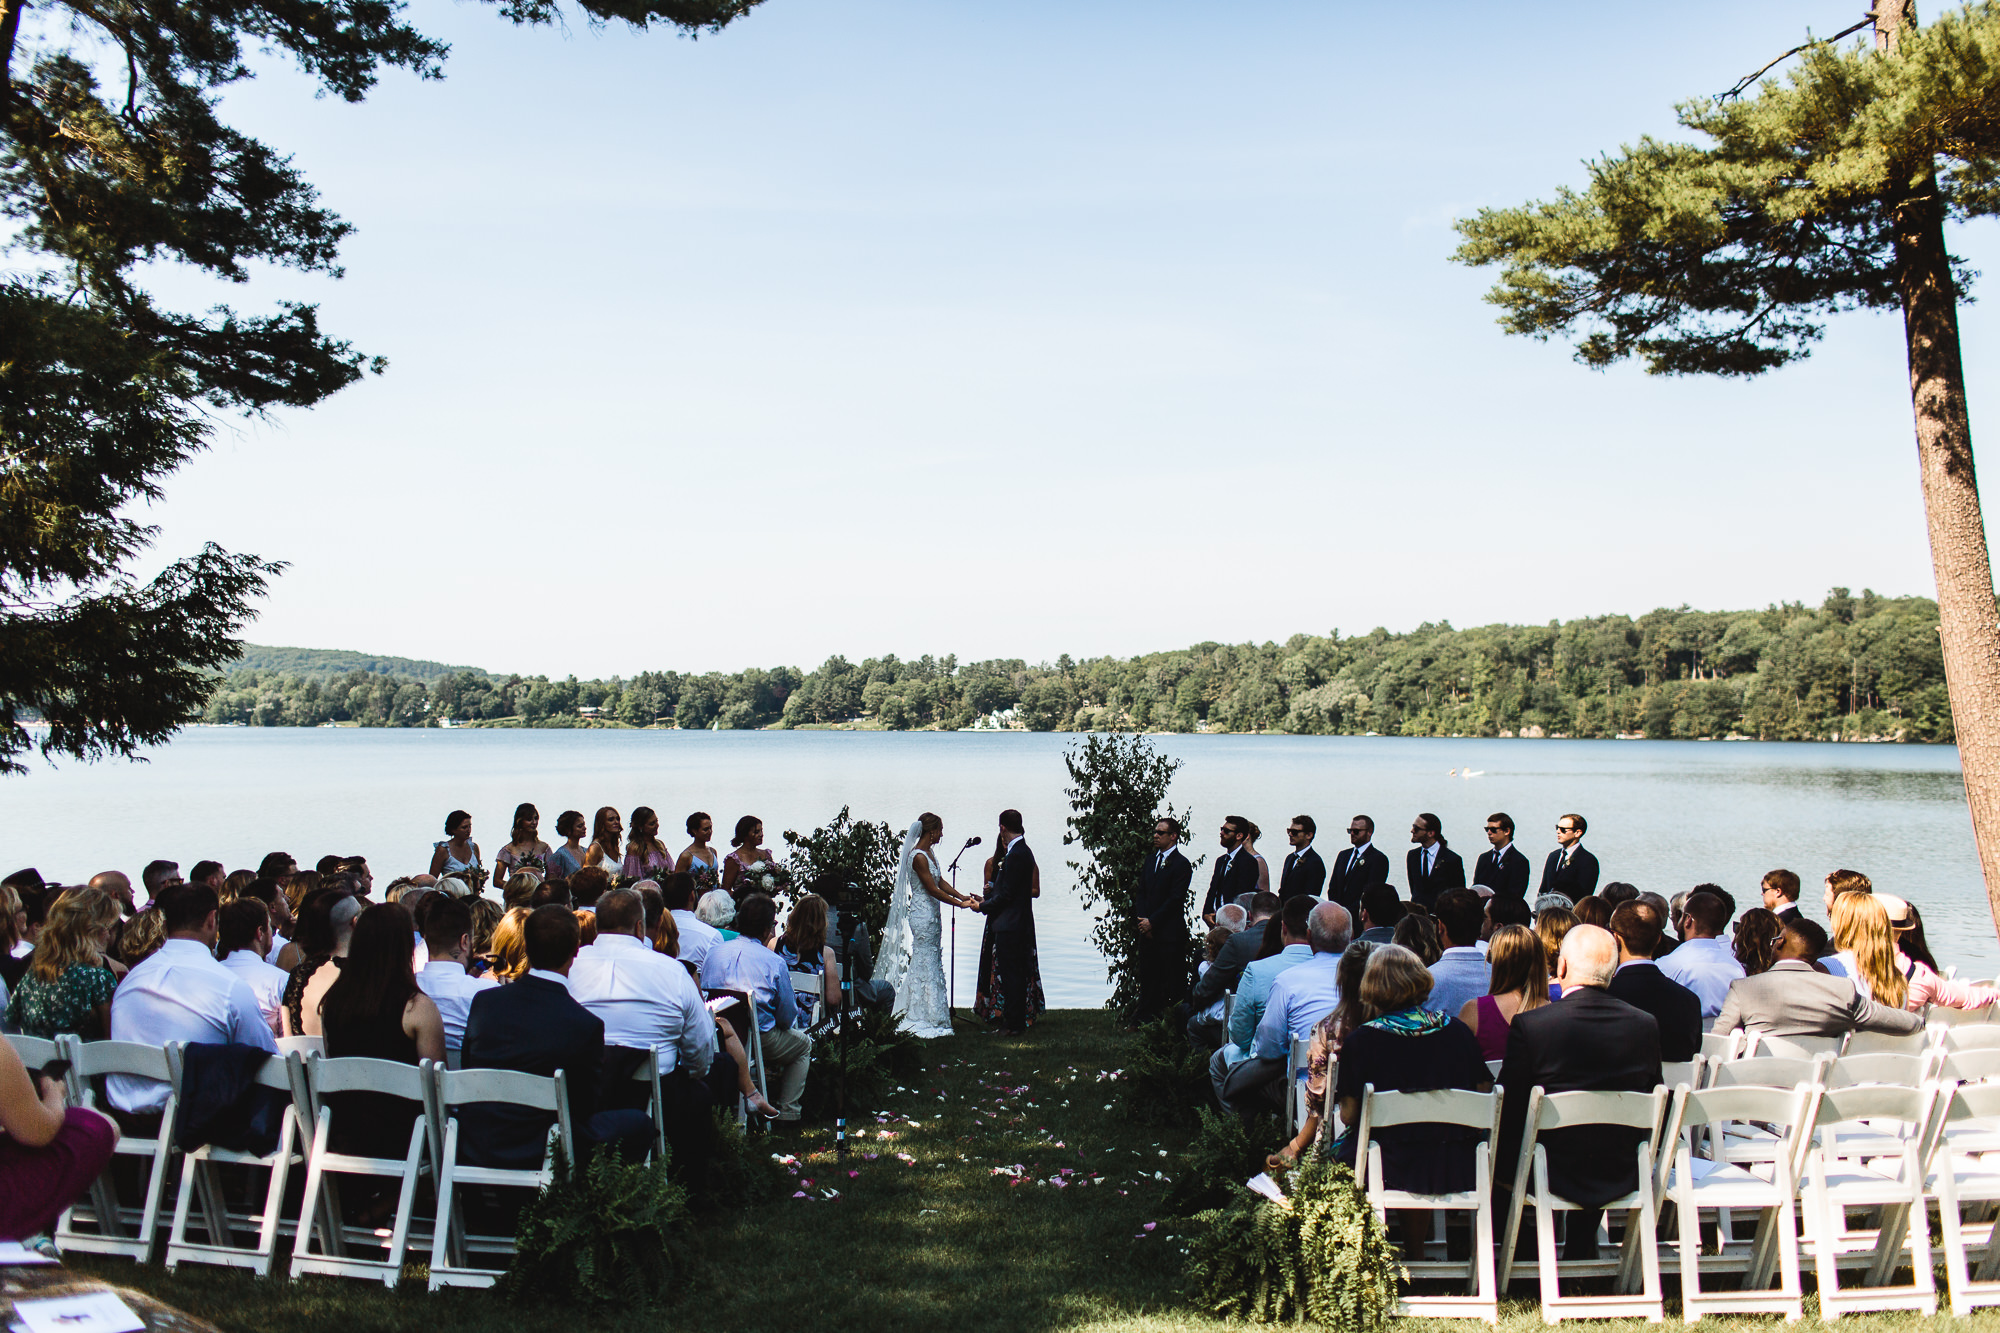 connecticut-summer-lake-wedding-emily-kirke-photography-upstyle (92 of 181).jpg